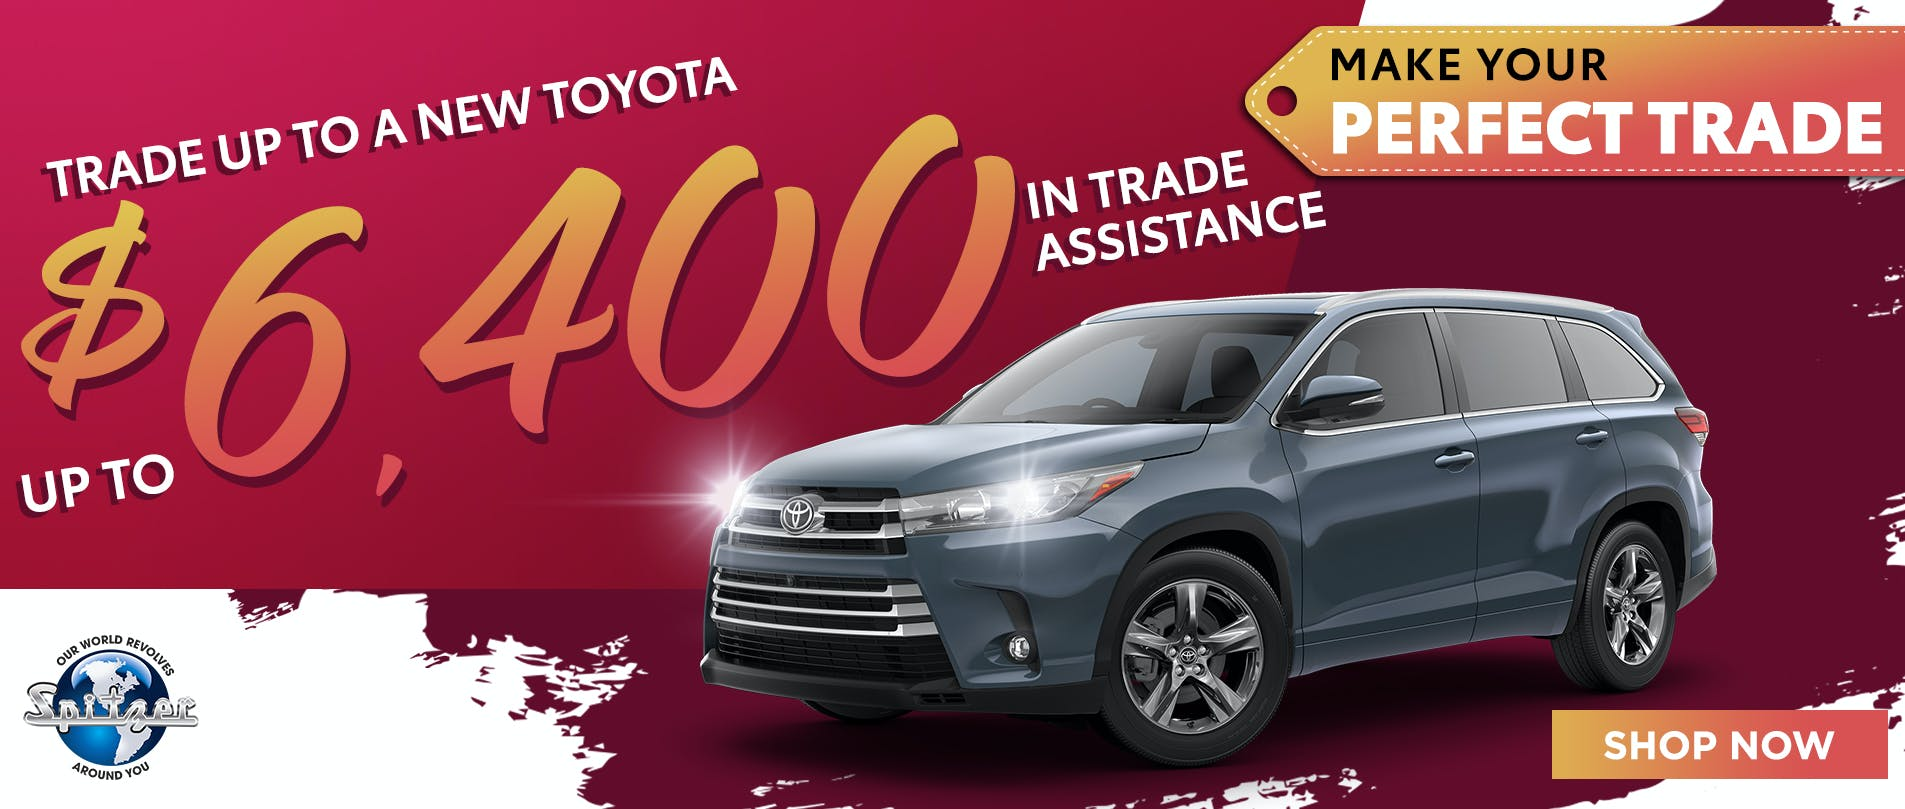 Recive up to $6400 in trade assistance